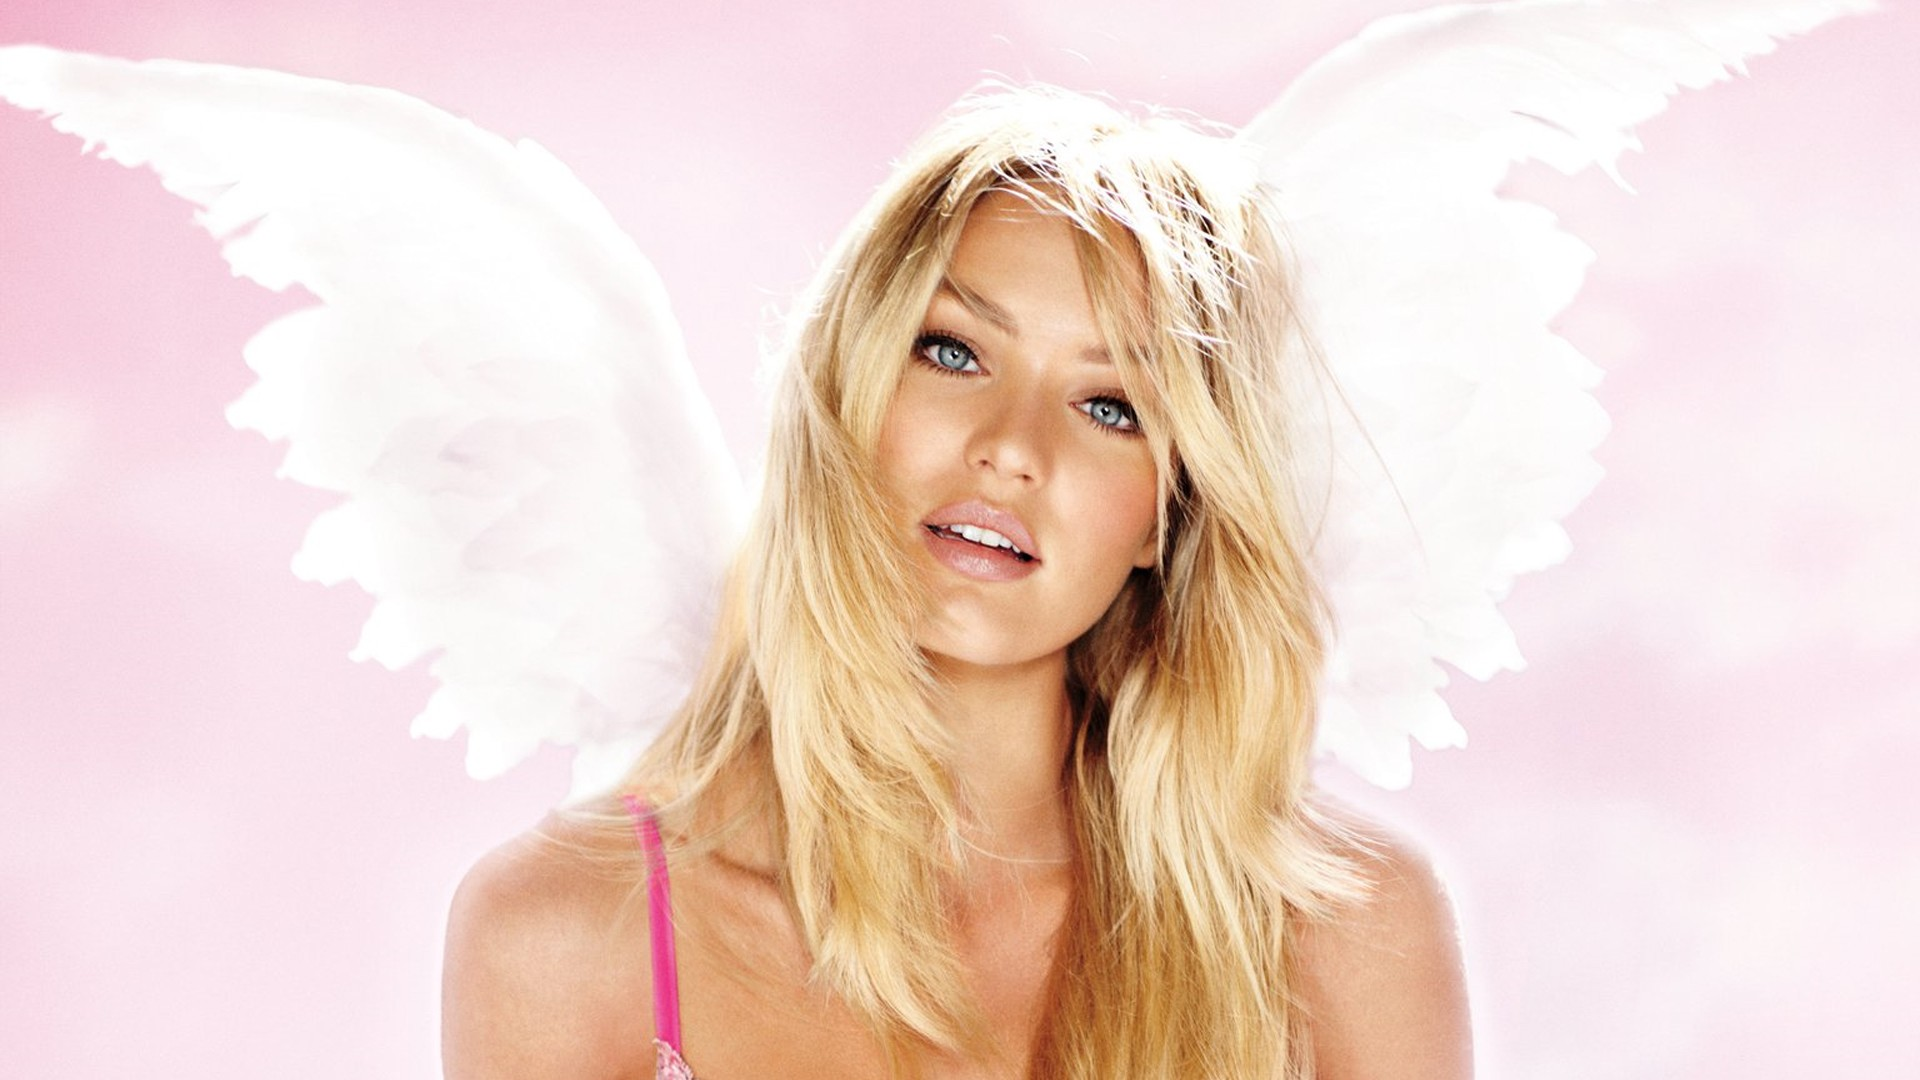 Candice Swanepoel #Candice Swanepoel Wallpaper   HD 99Wallpaper Wallpaper